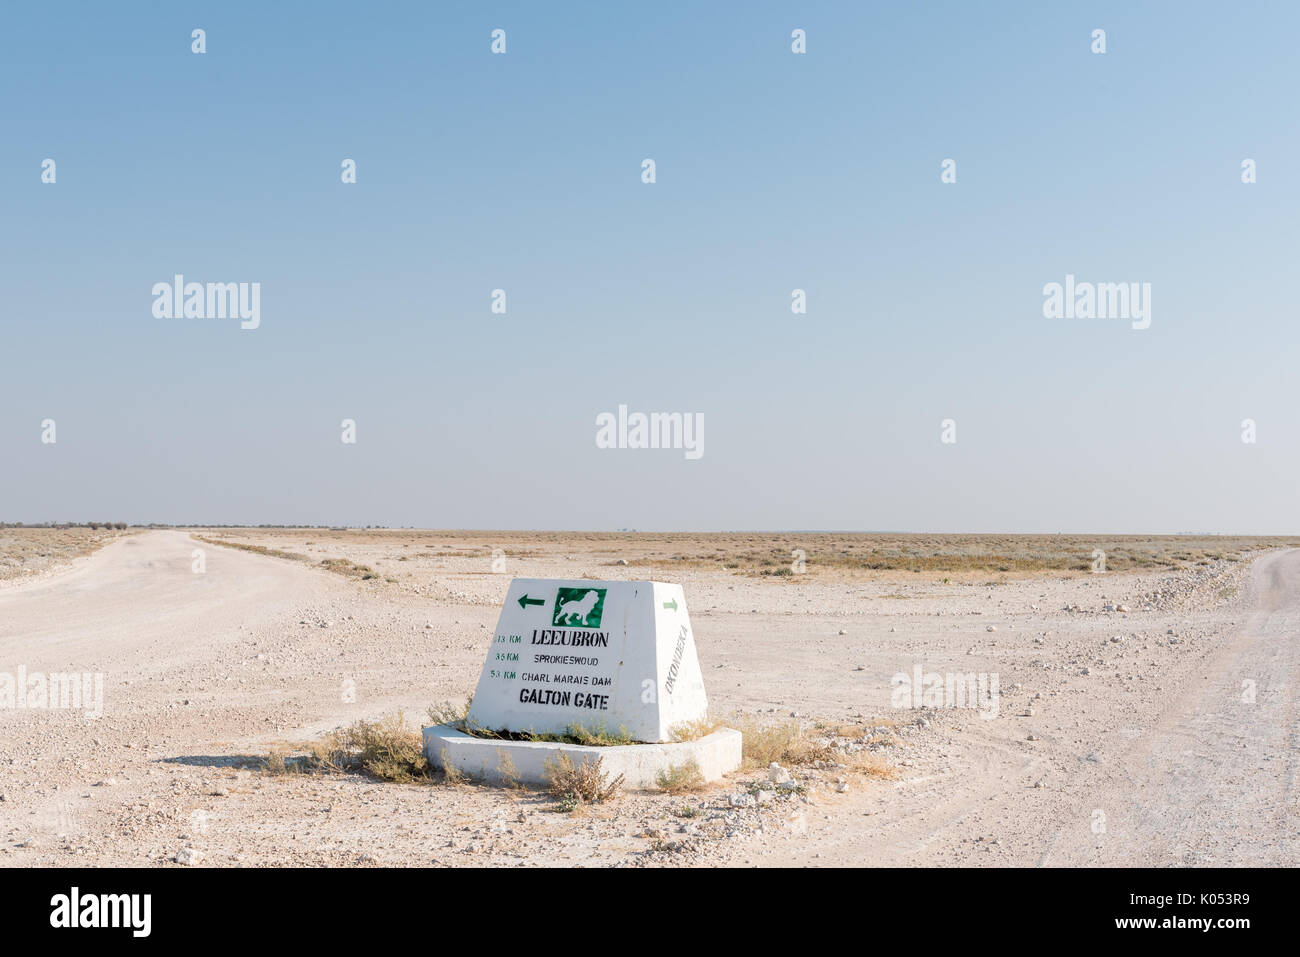 ETOSHA NATIONAL PARK, NAMIBIA - JUNE 26, 2017: A distance sign on the road between the Okaukeujo and Olifantsrus Rest Camps in the Etosha National Par - Stock Image